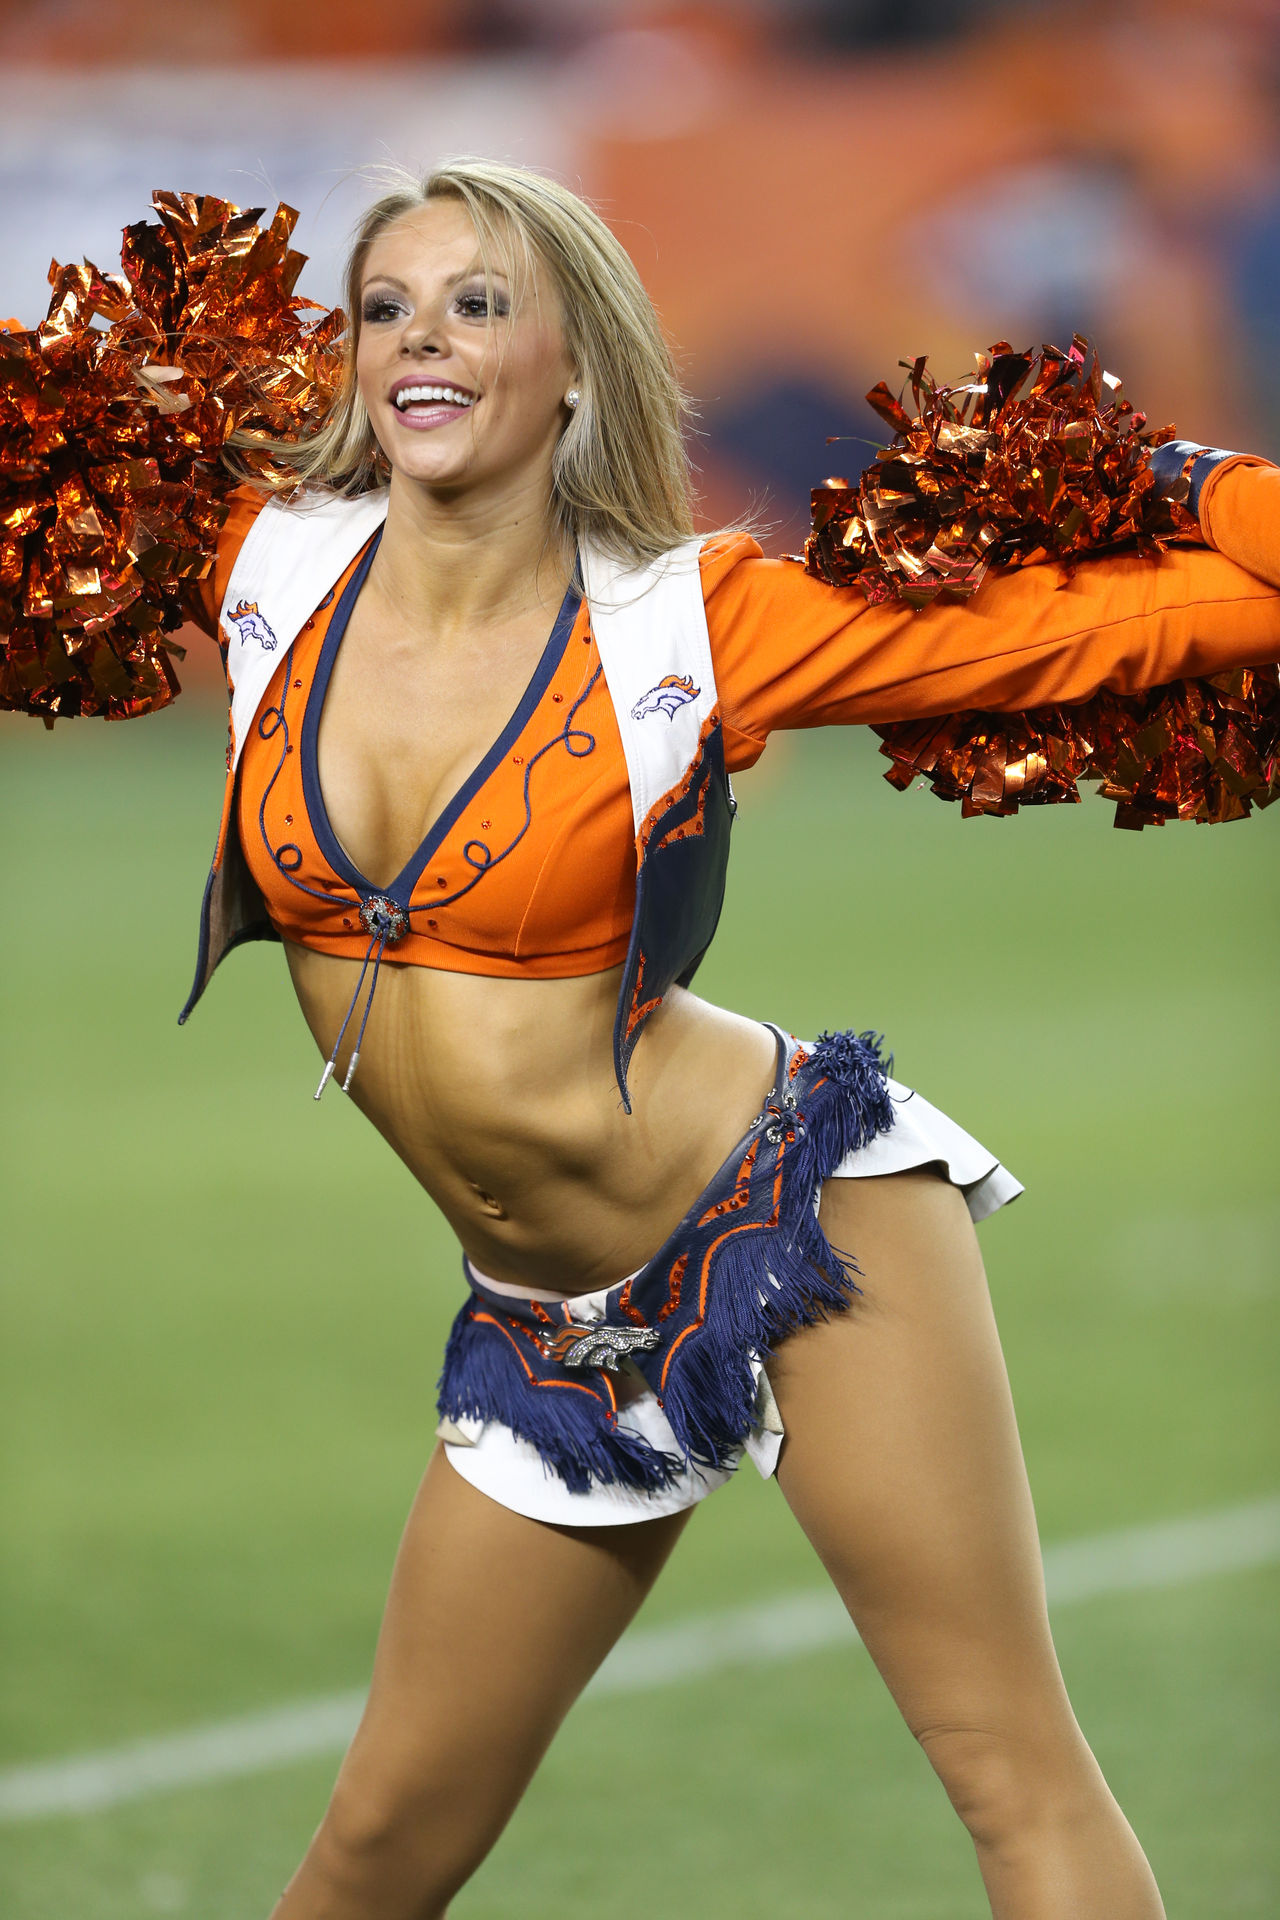 Official Site of the Denver Broncos Pictures of the broncos cheerleaders